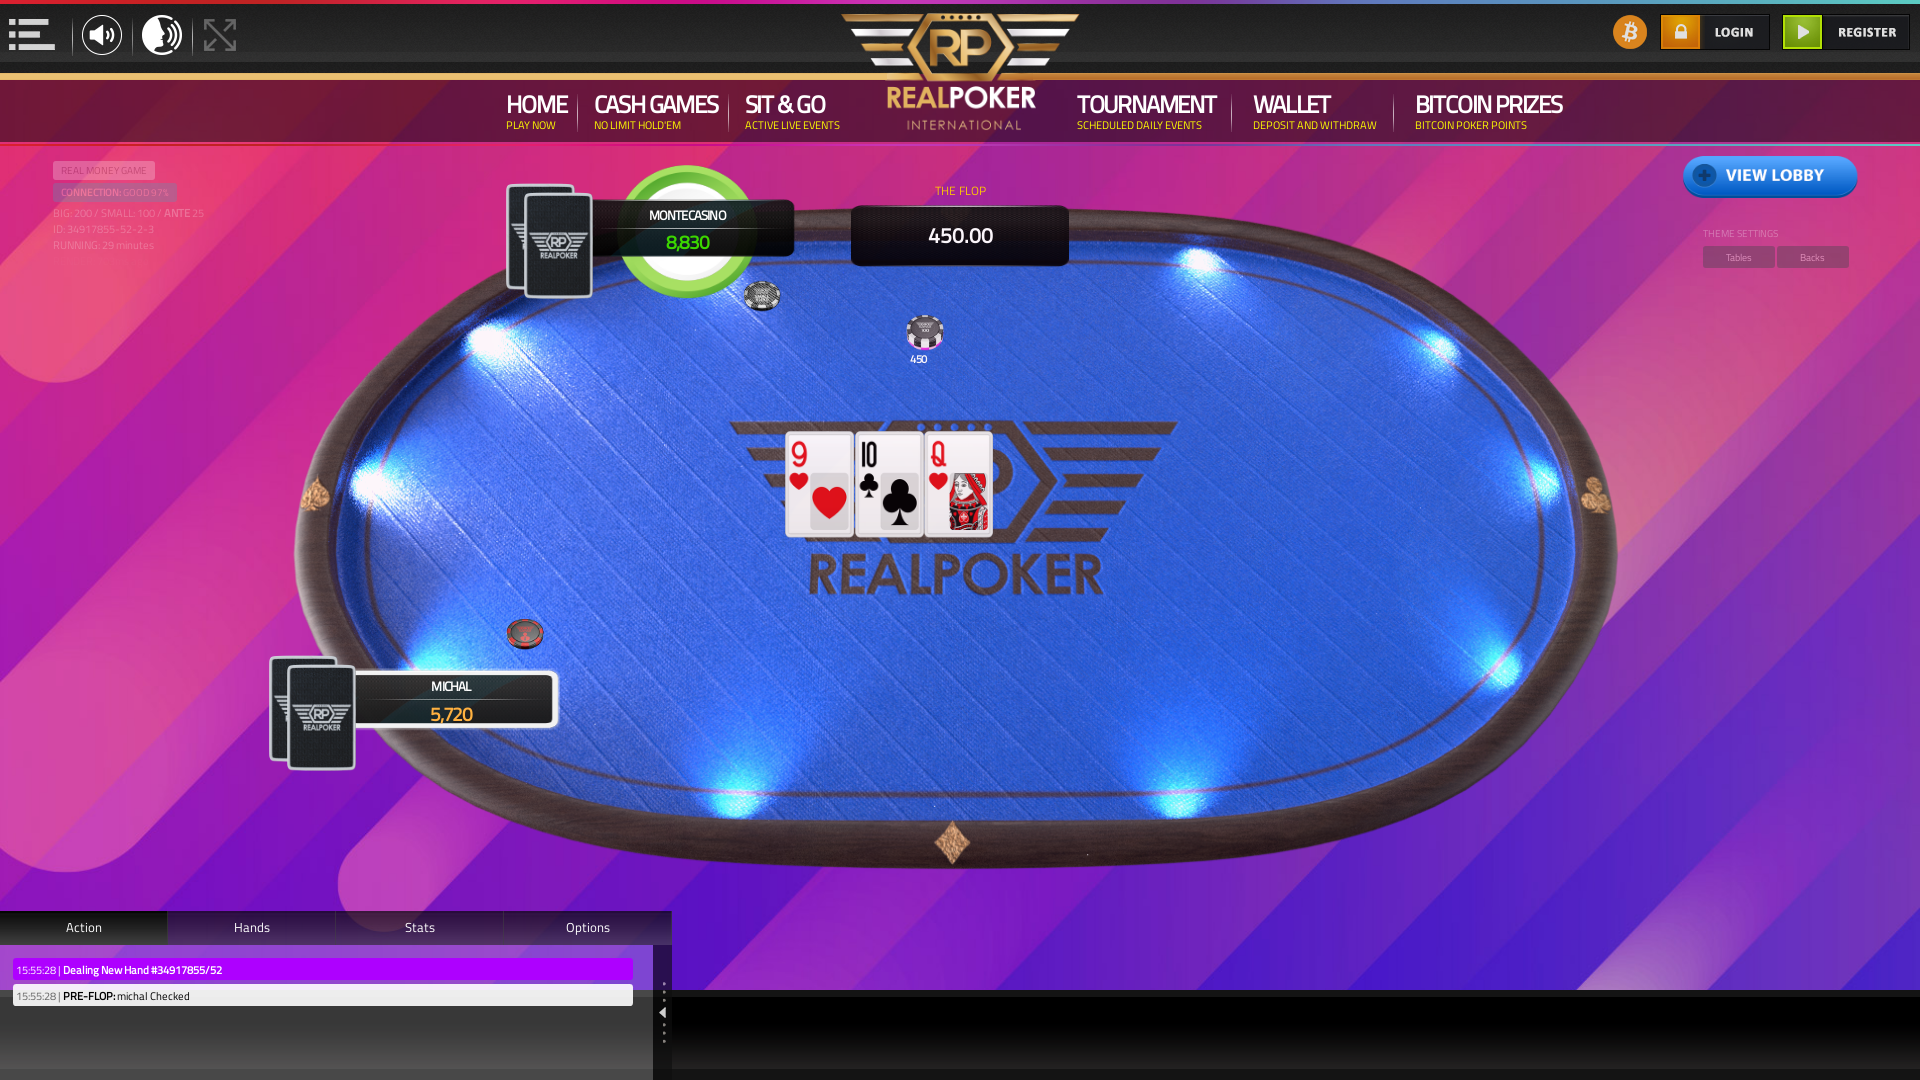 The 53rd hand dealt between montecasino, michal,  on poker bitcoin